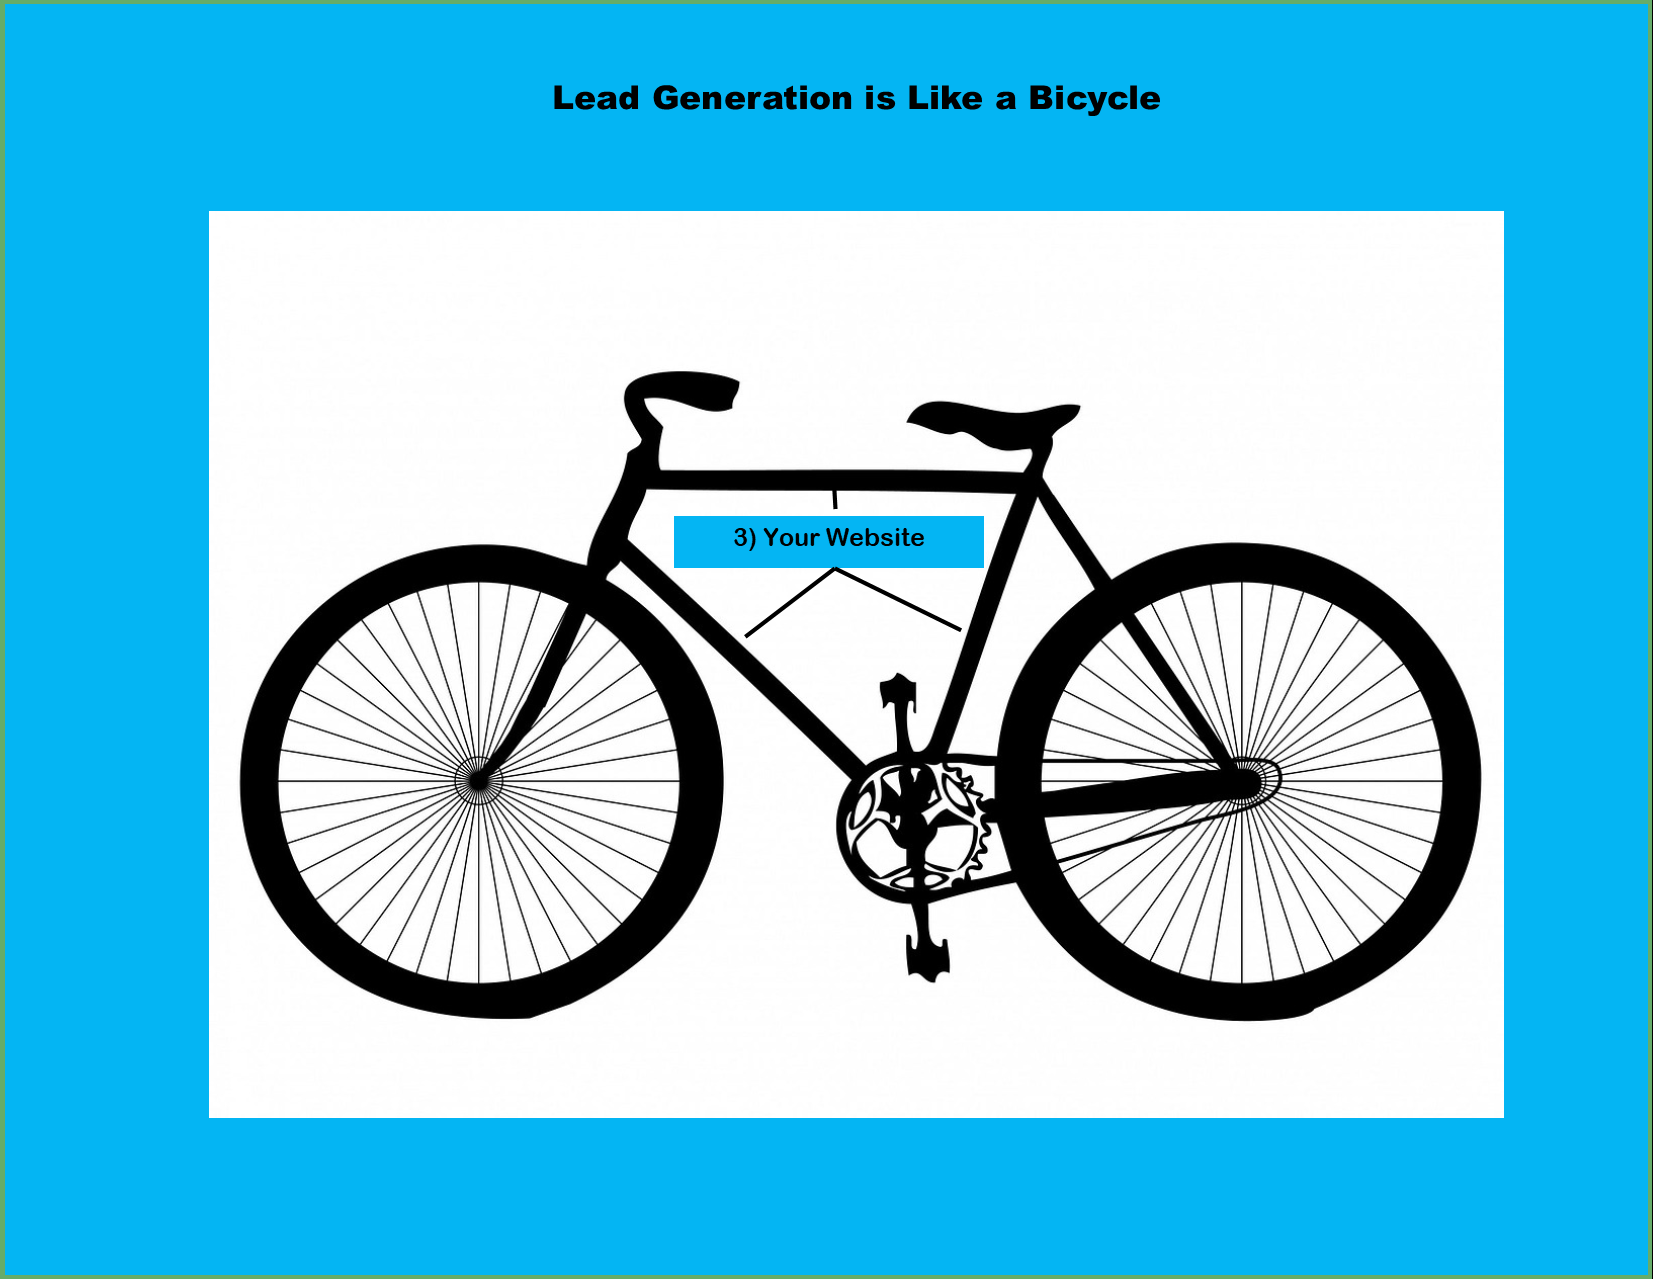 Lead Generation Domination Bicycle - The Frame